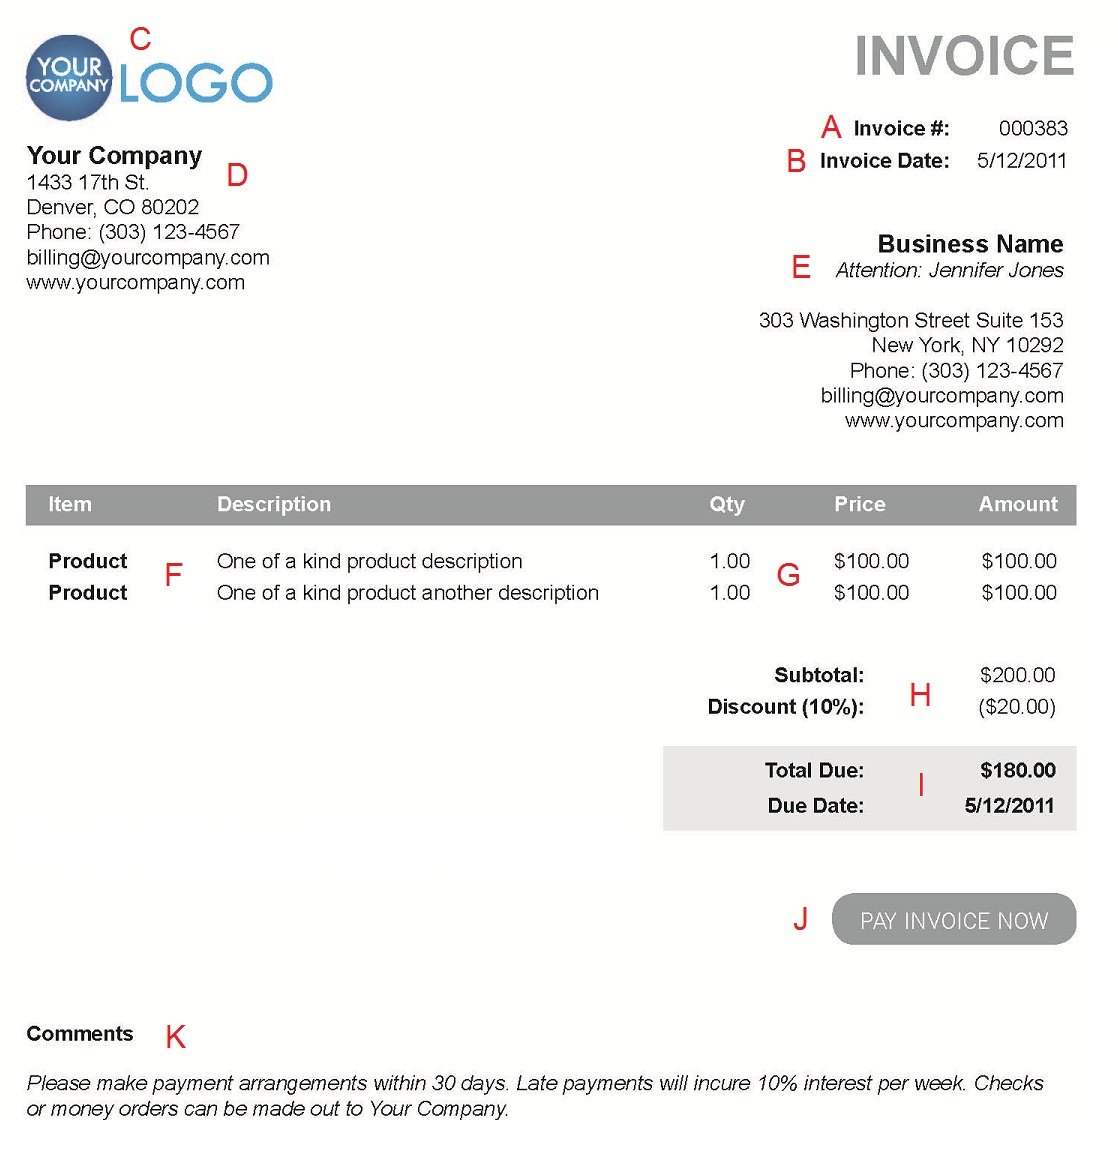 Coachoutletonlineplusus  Picturesque The  Different Sections Of An Electronic Payment Invoice With Exquisite A  With Beauteous What Is A Credit Sales Invoice Also Define Invoice Price In Addition Free Software To Create Invoices And Standard Proforma Invoice Format As Well As Personal Invoice Template Additionally Cash Invoice Receipt From Paysimplecom With Coachoutletonlineplusus  Exquisite The  Different Sections Of An Electronic Payment Invoice With Beauteous A  And Picturesque What Is A Credit Sales Invoice Also Define Invoice Price In Addition Free Software To Create Invoices From Paysimplecom